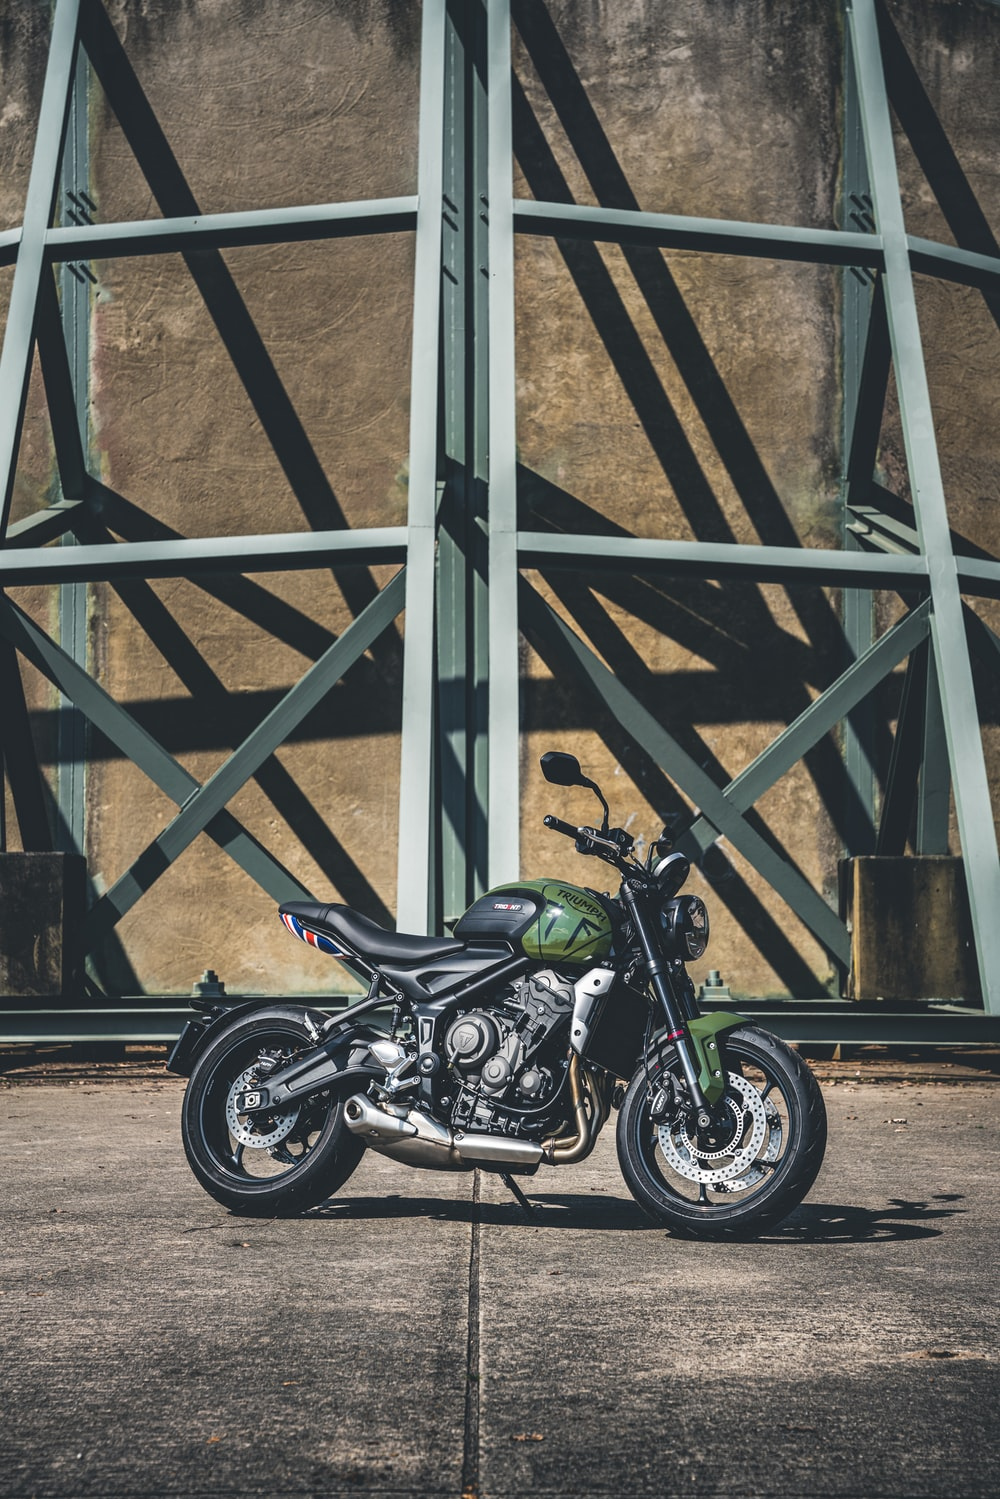 black and green sports bike parked beside gray metal frame